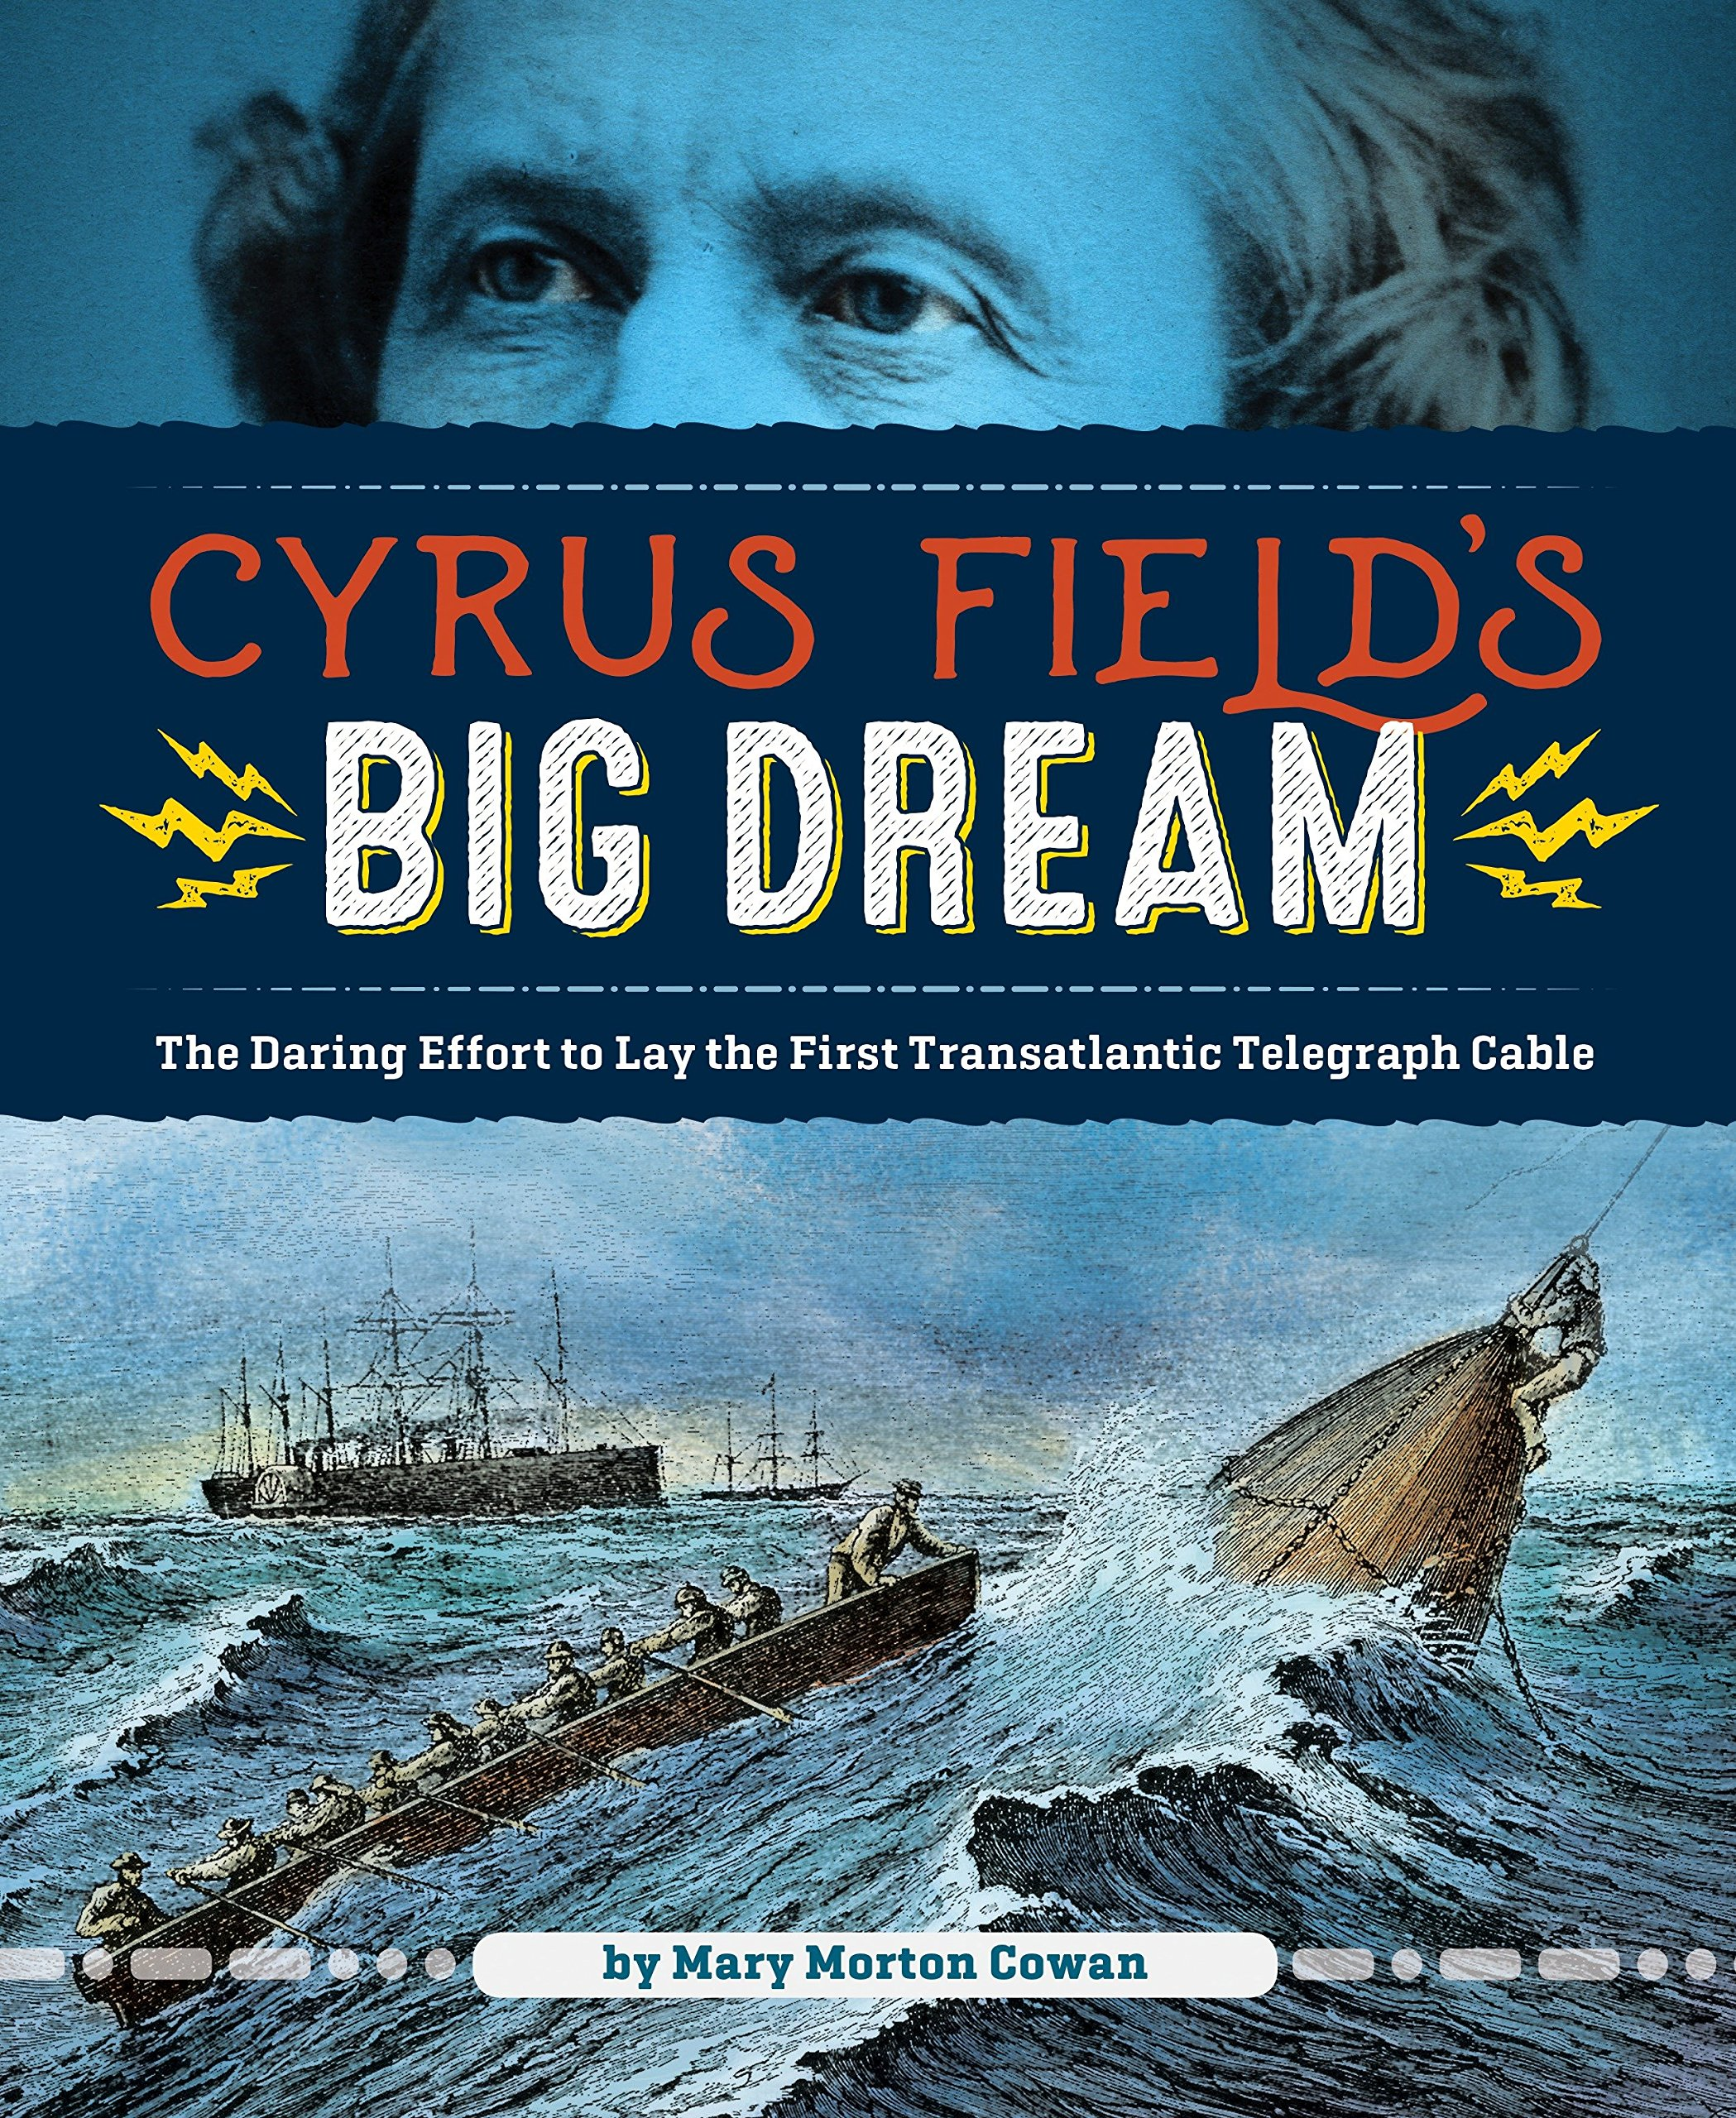 Cyrus Field's Big Dream: The Daring Effort to Lay the First Transatlantic Telegraph Cable